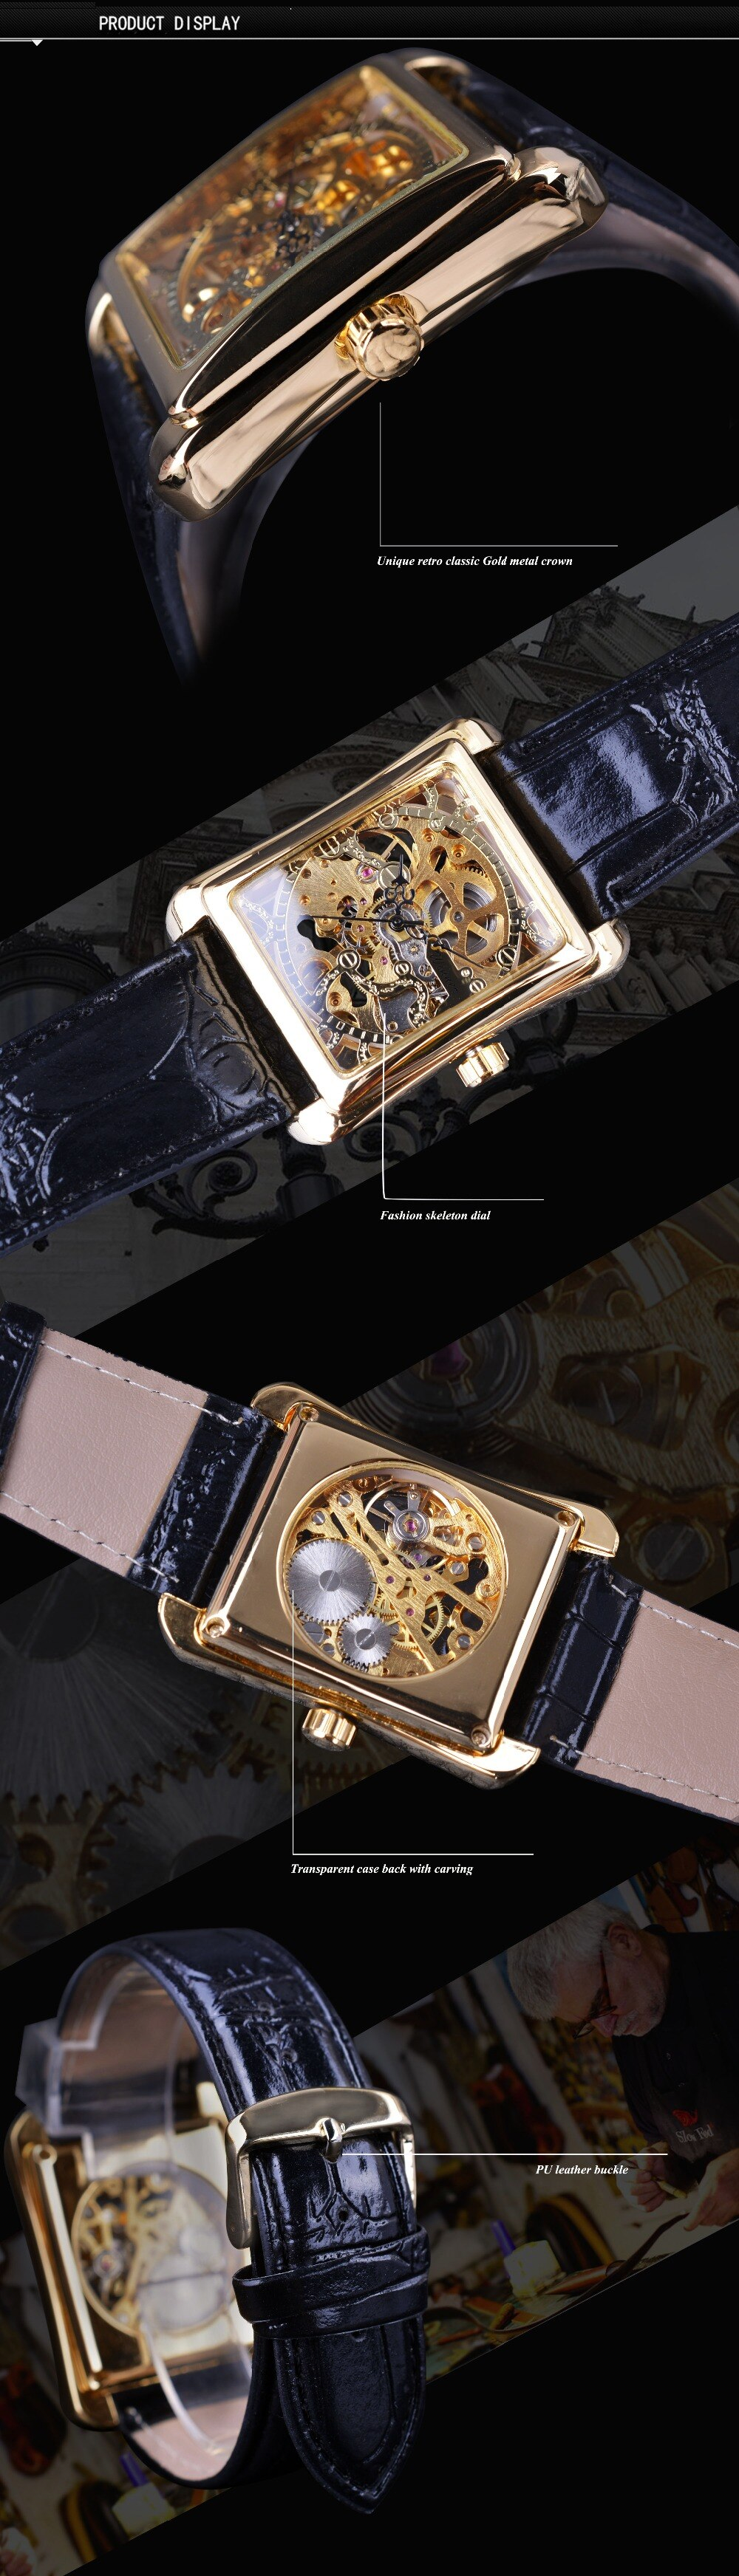 Hollow - Mechanical Watch | Stigma Watches™ - Online Store